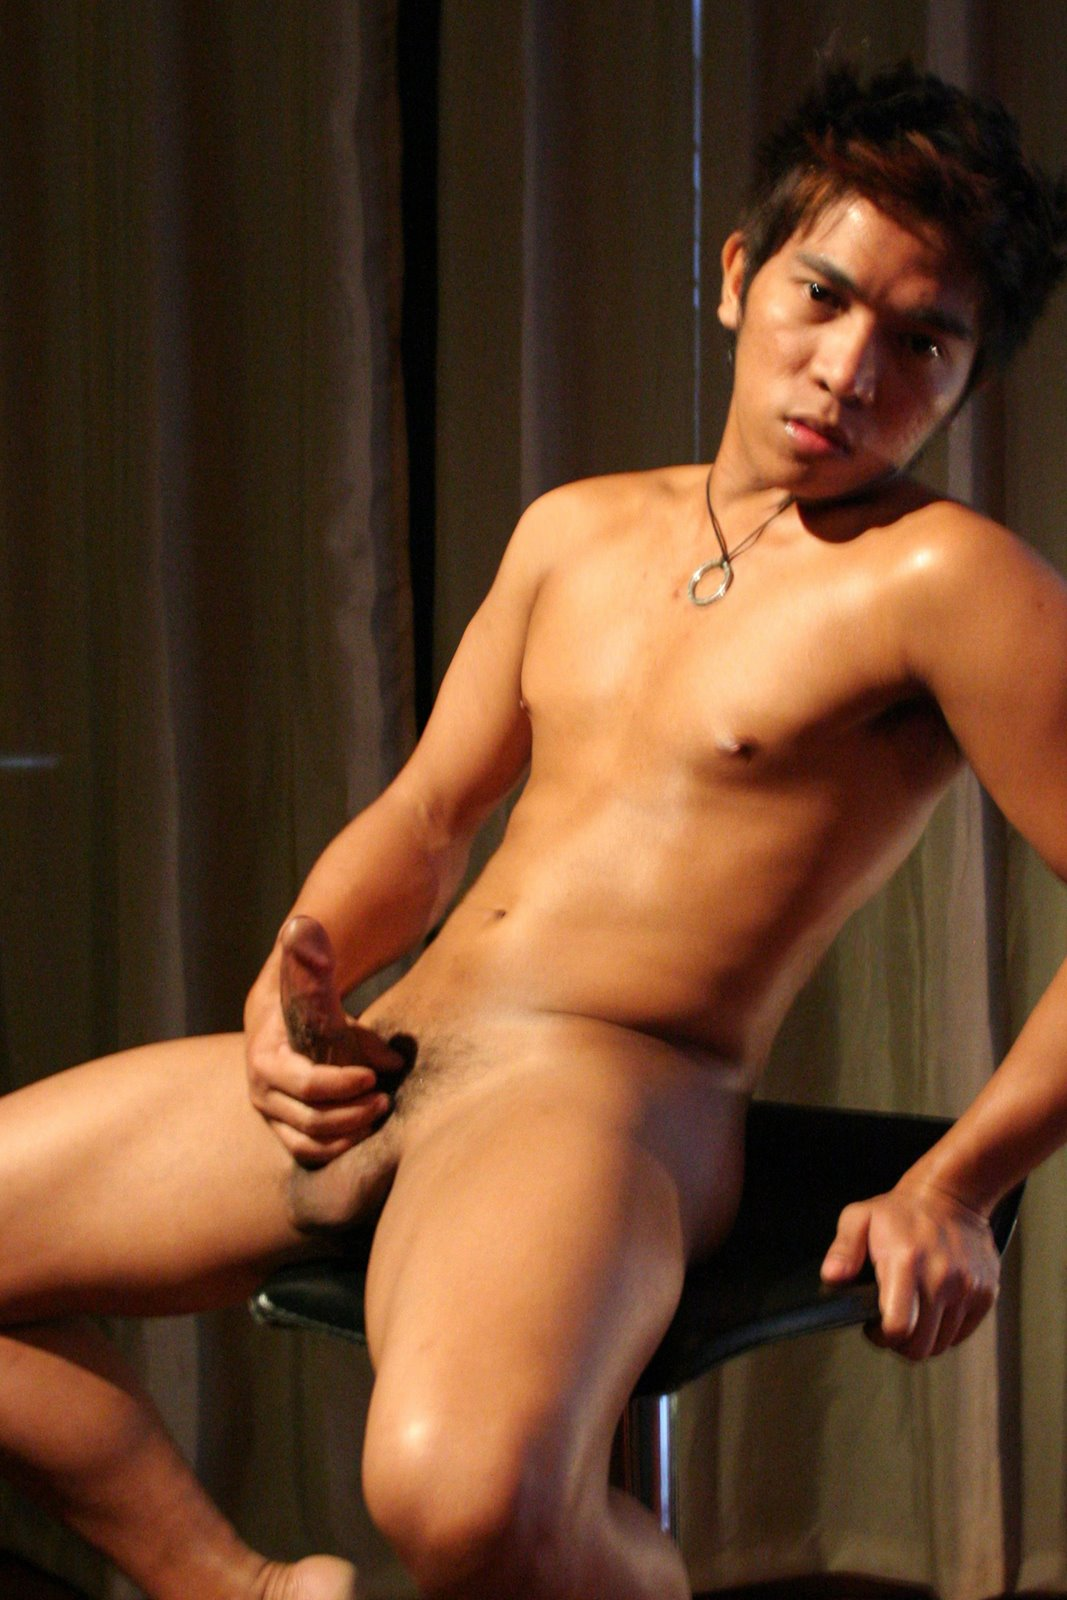 male homemade nudity pics